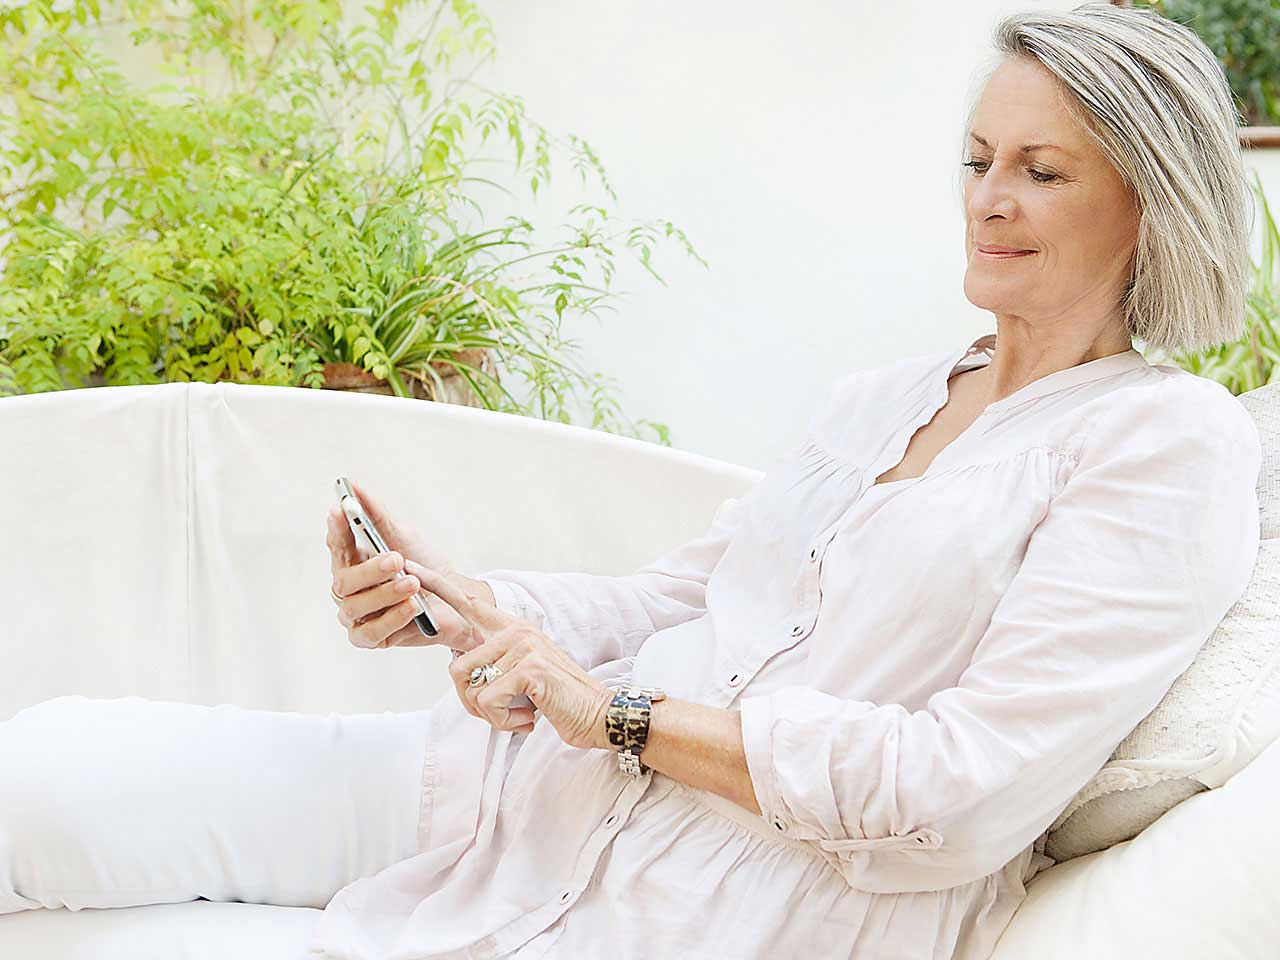 Mature lady using smartphone